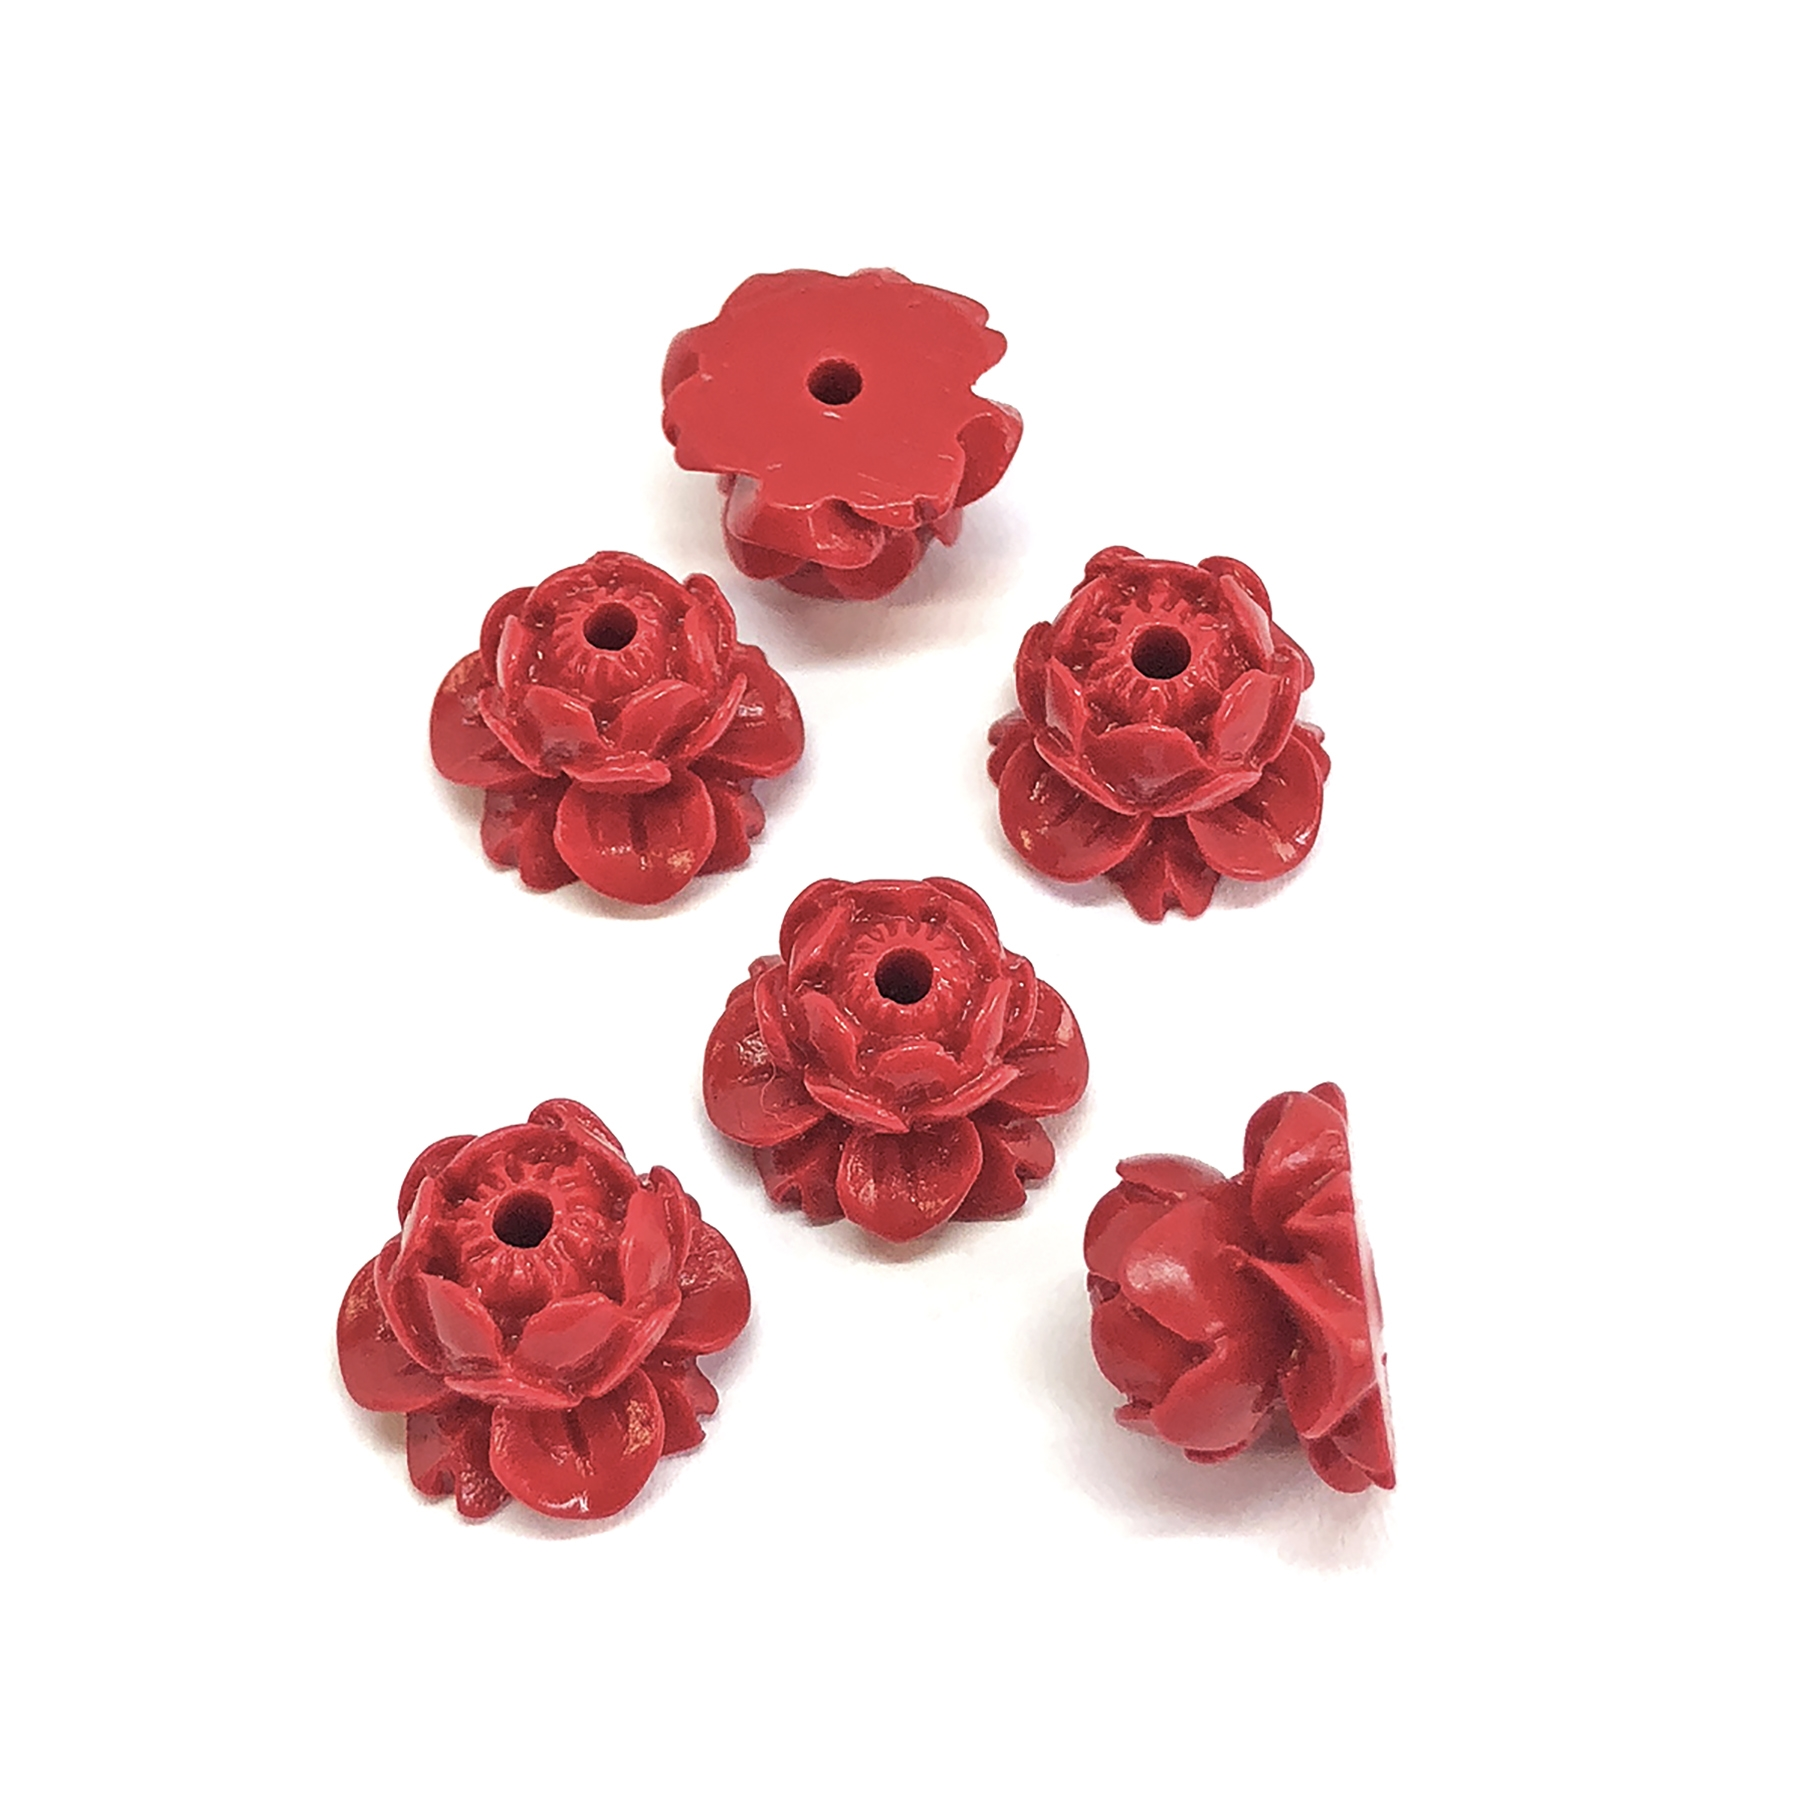 carved Lotus cinnabar beads, resin, red, beading supplies, vintage supplies, jewelry making, jewelry supplies, fashion beads, floral beads, resin beads, carved beads, fire brick red, flower beads, lotus bead, bead, carved lotus, 09209